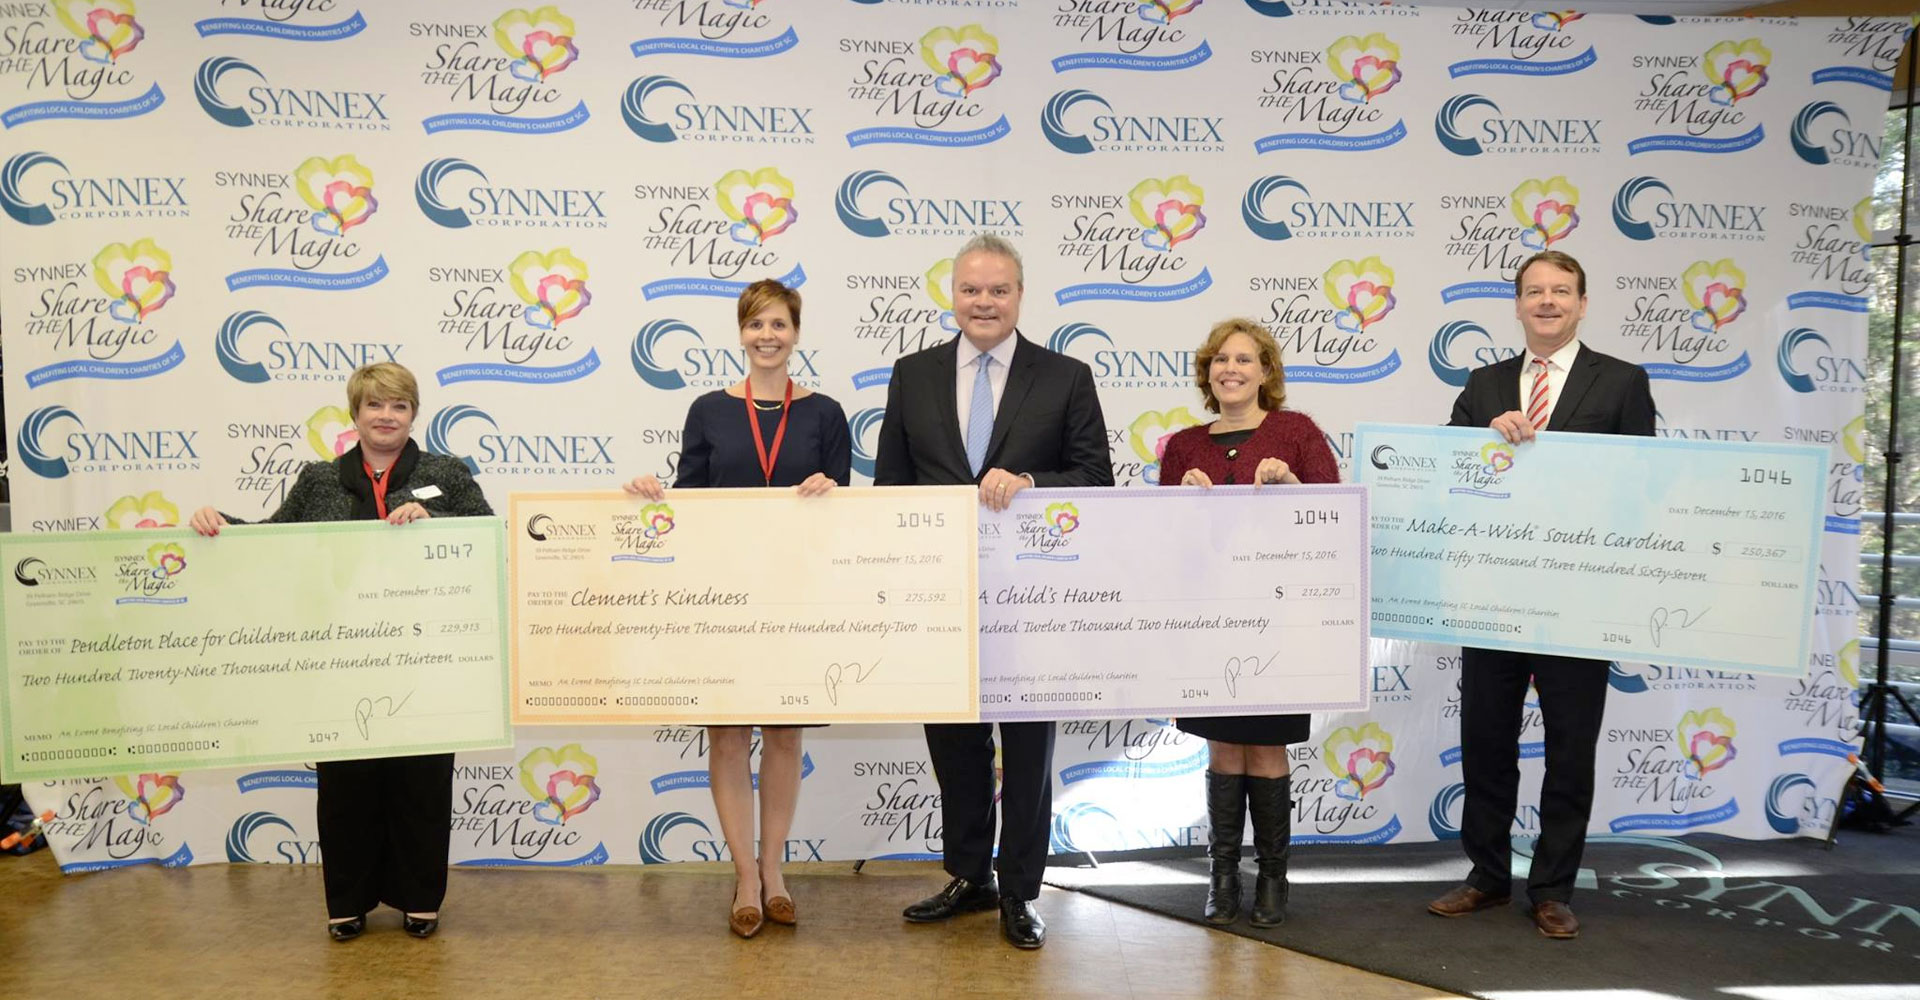 SYNNEX Share the Magic Raises More Than $1.5 Million for Upstate Children's Charities